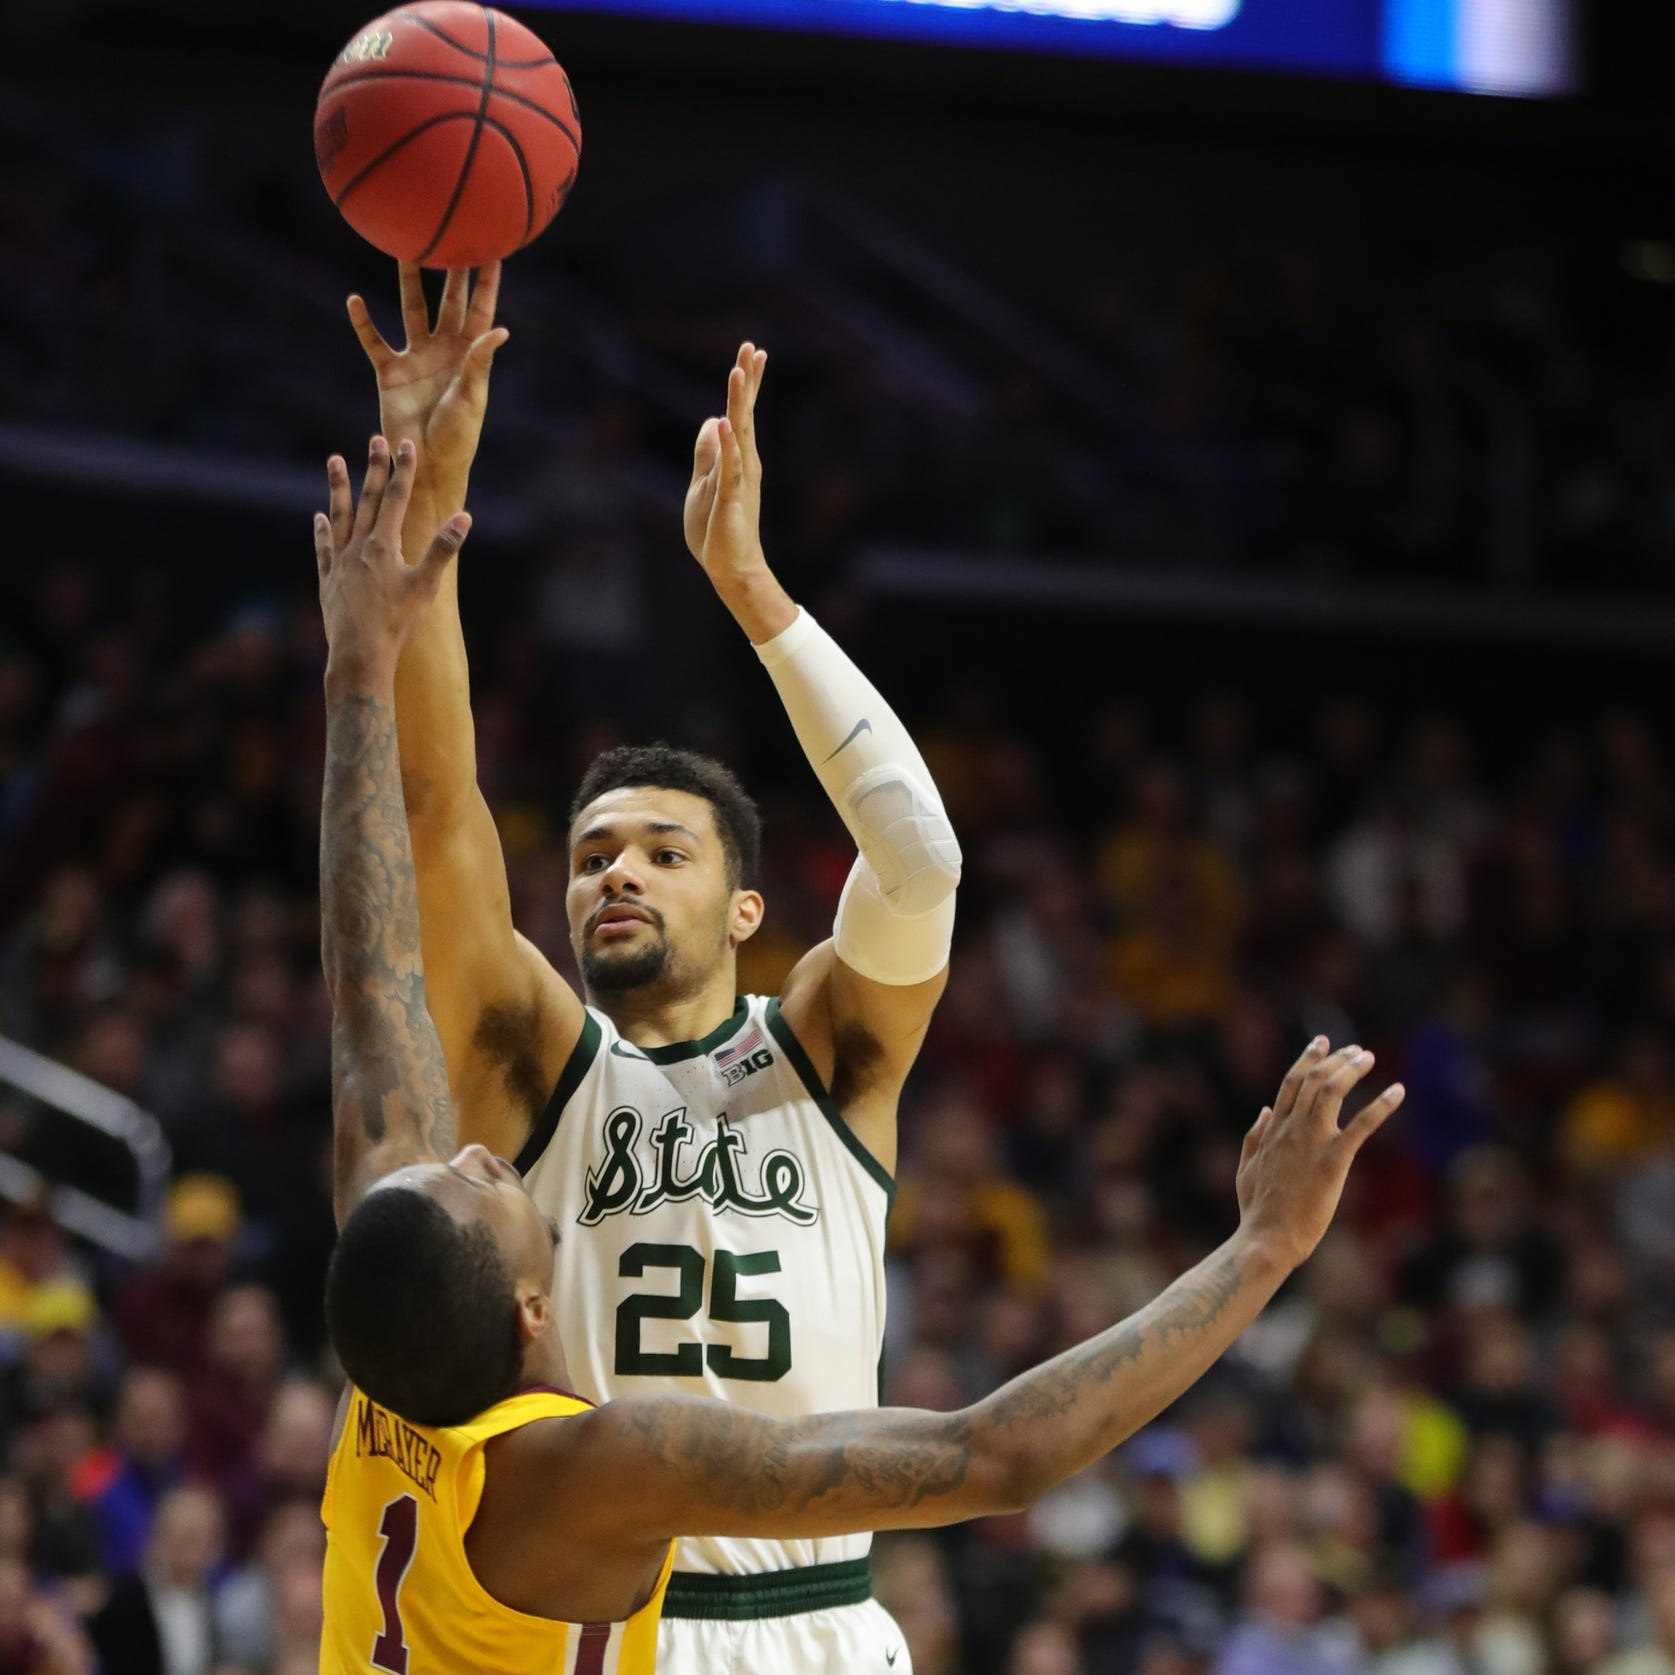 Michigan State's Kenny Goins 'never lost confidence' during shooting slump